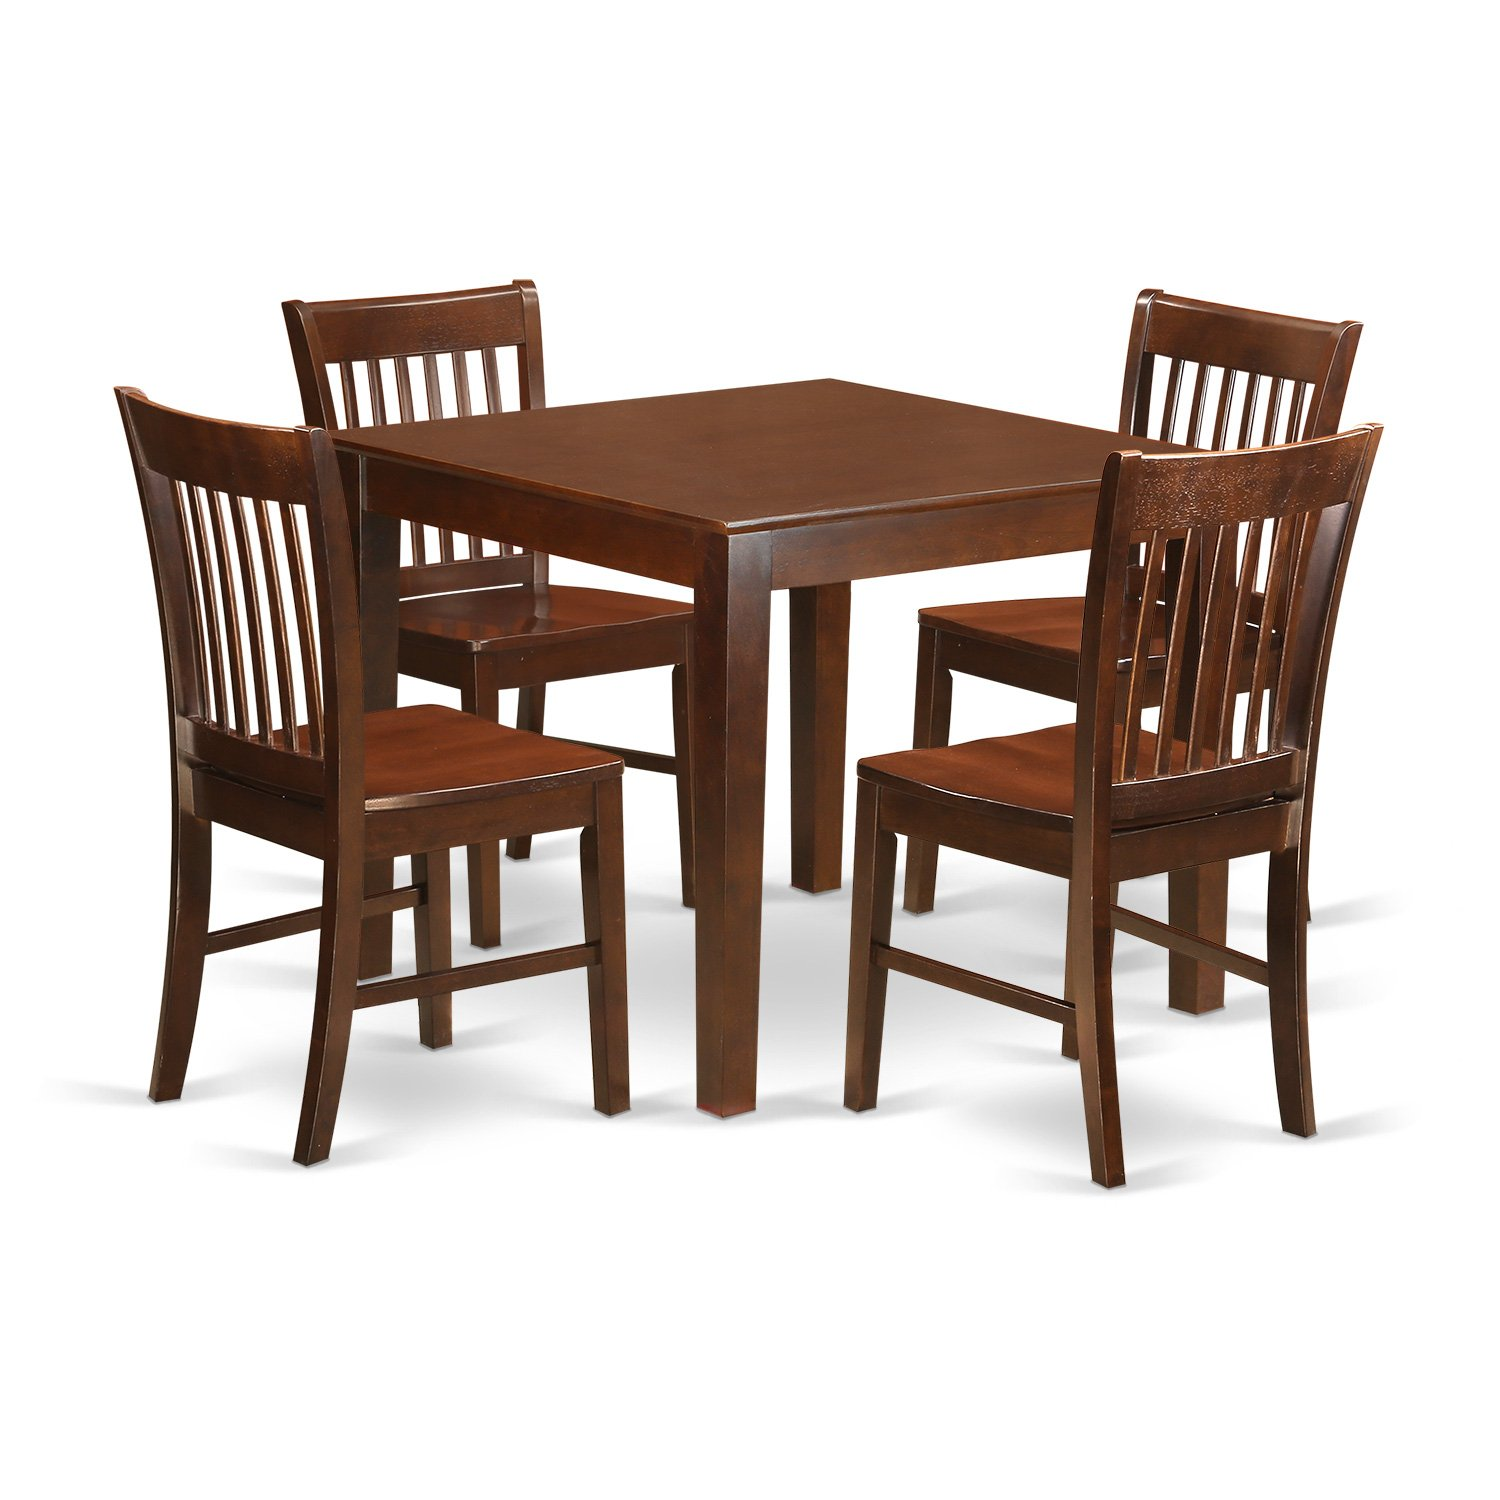 East West Furniture OXNO5-MAH-W 5 PC Kitchen Table Set with One Oxford Table & 4 Dining Room Chairs in Mahogany Finish